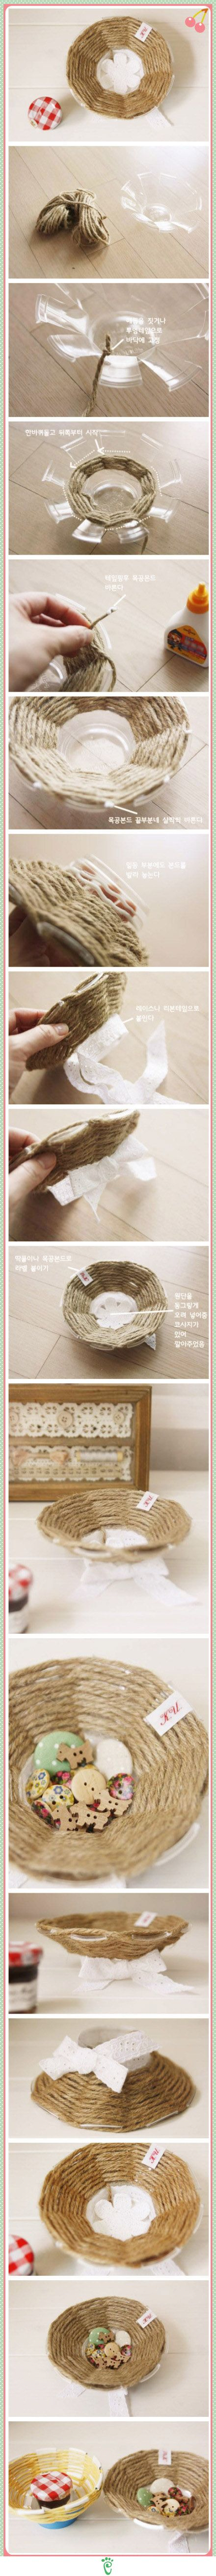 Basket Weaving Using A Paper Cup : The best images about weaving for children on